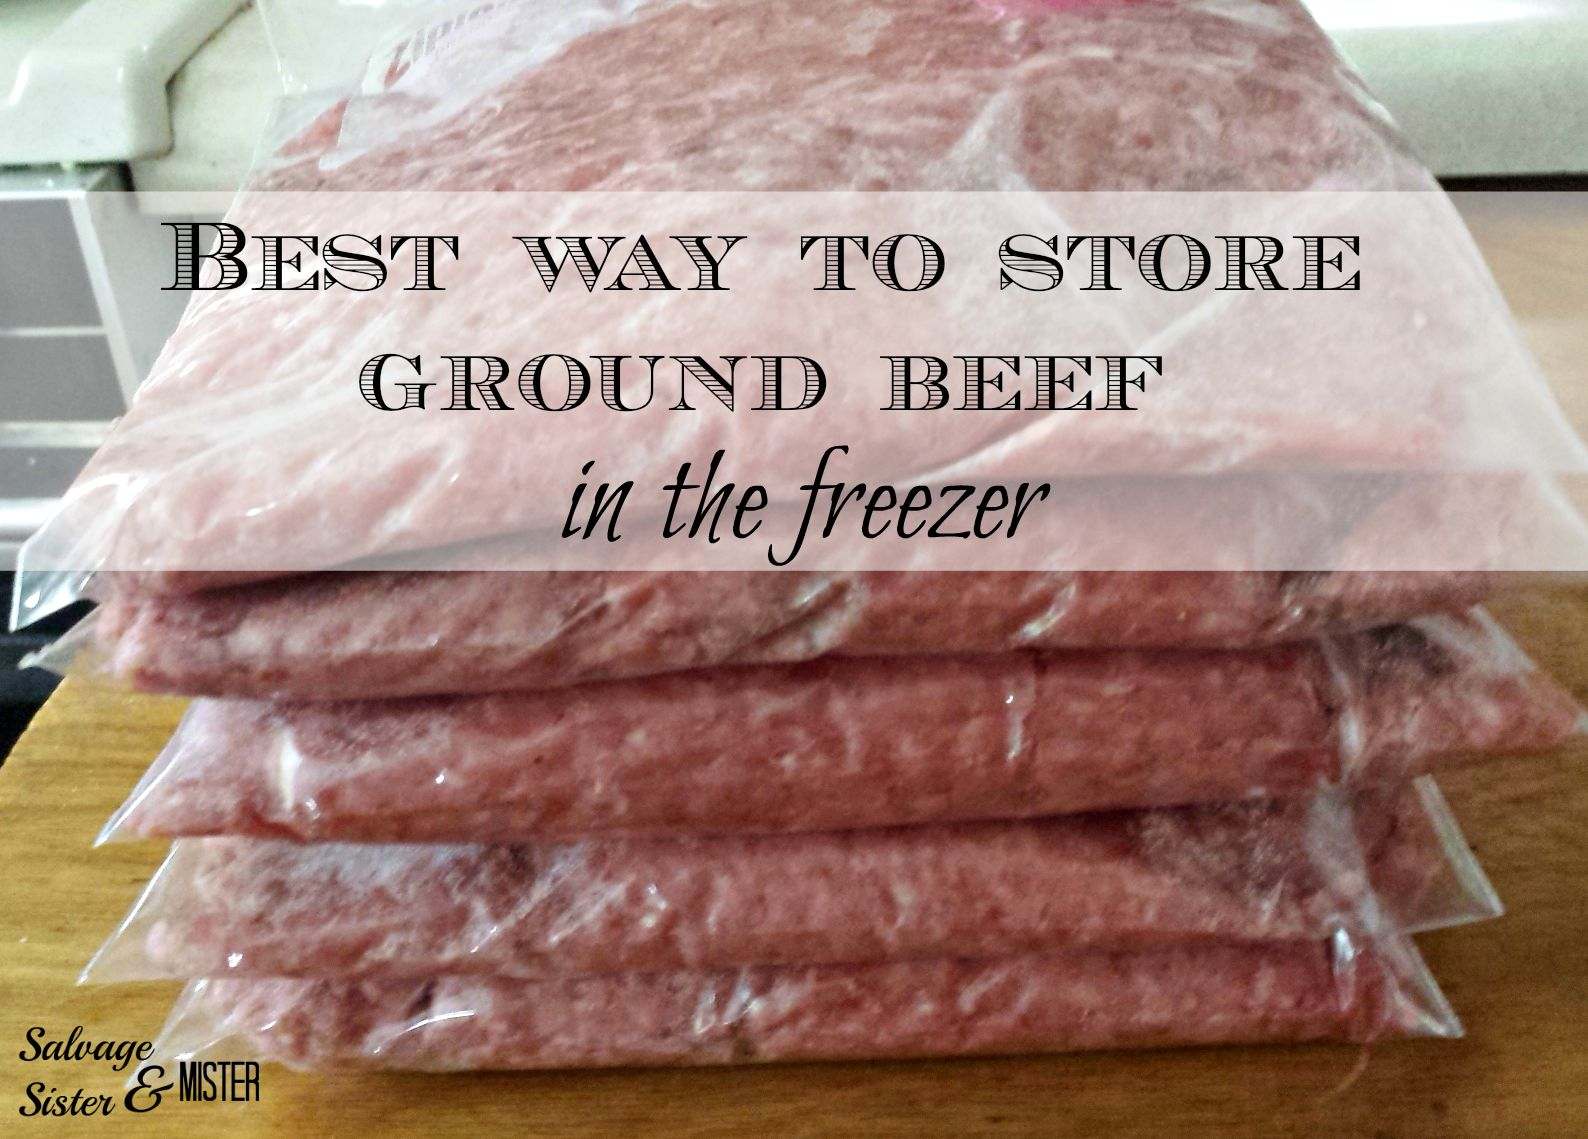 The Best Way To Ground Beef In Freezer A Large Package Of